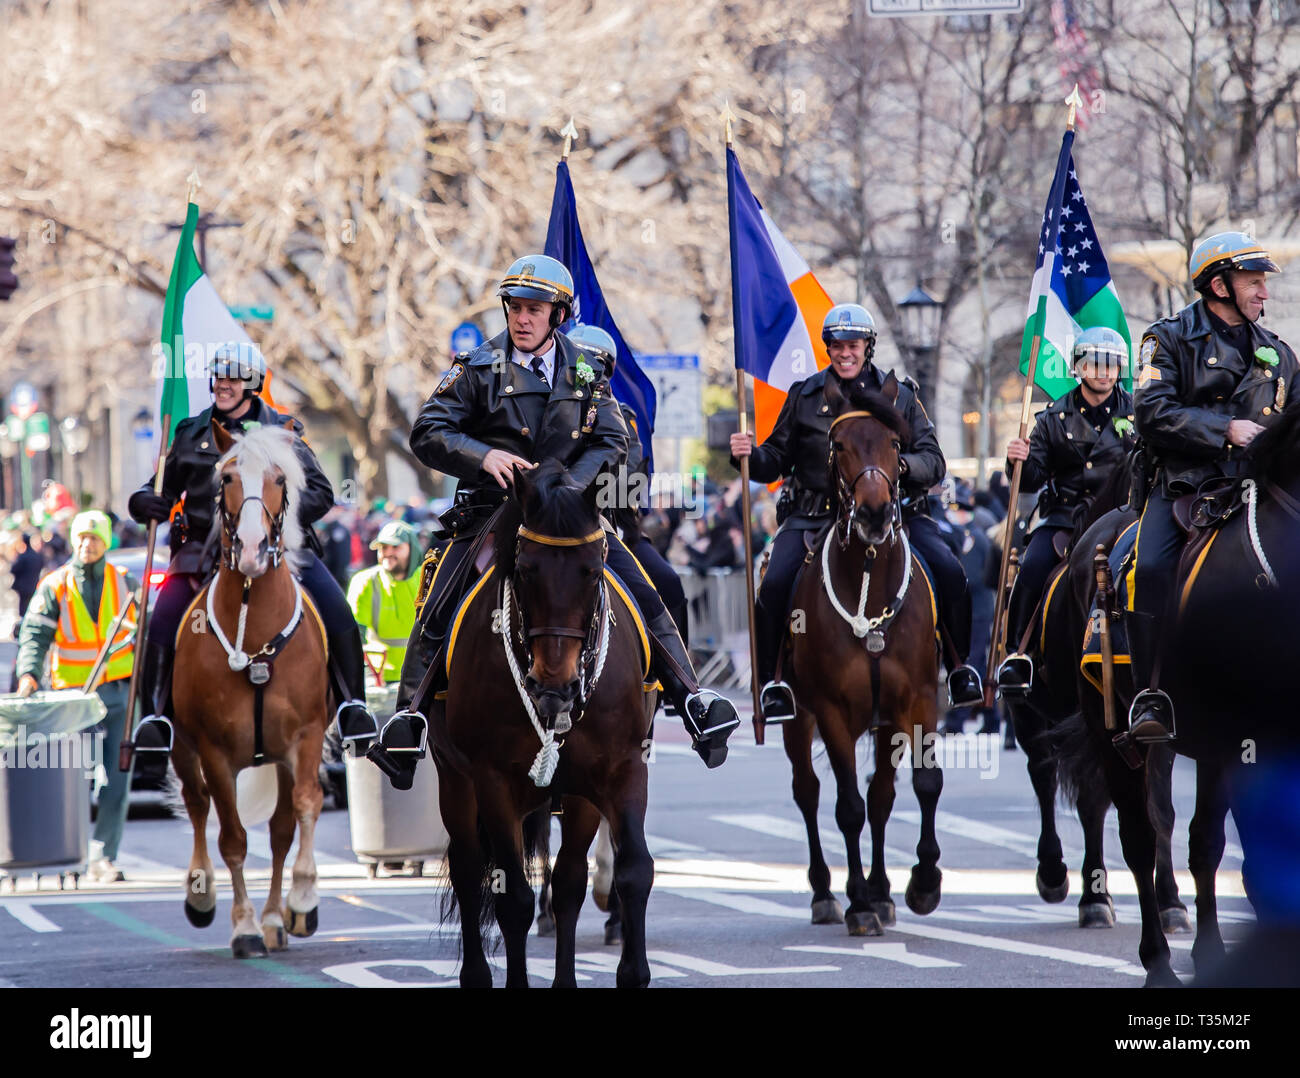 St. Patrick's Day Parade in New York City, 2019 - Stock Image